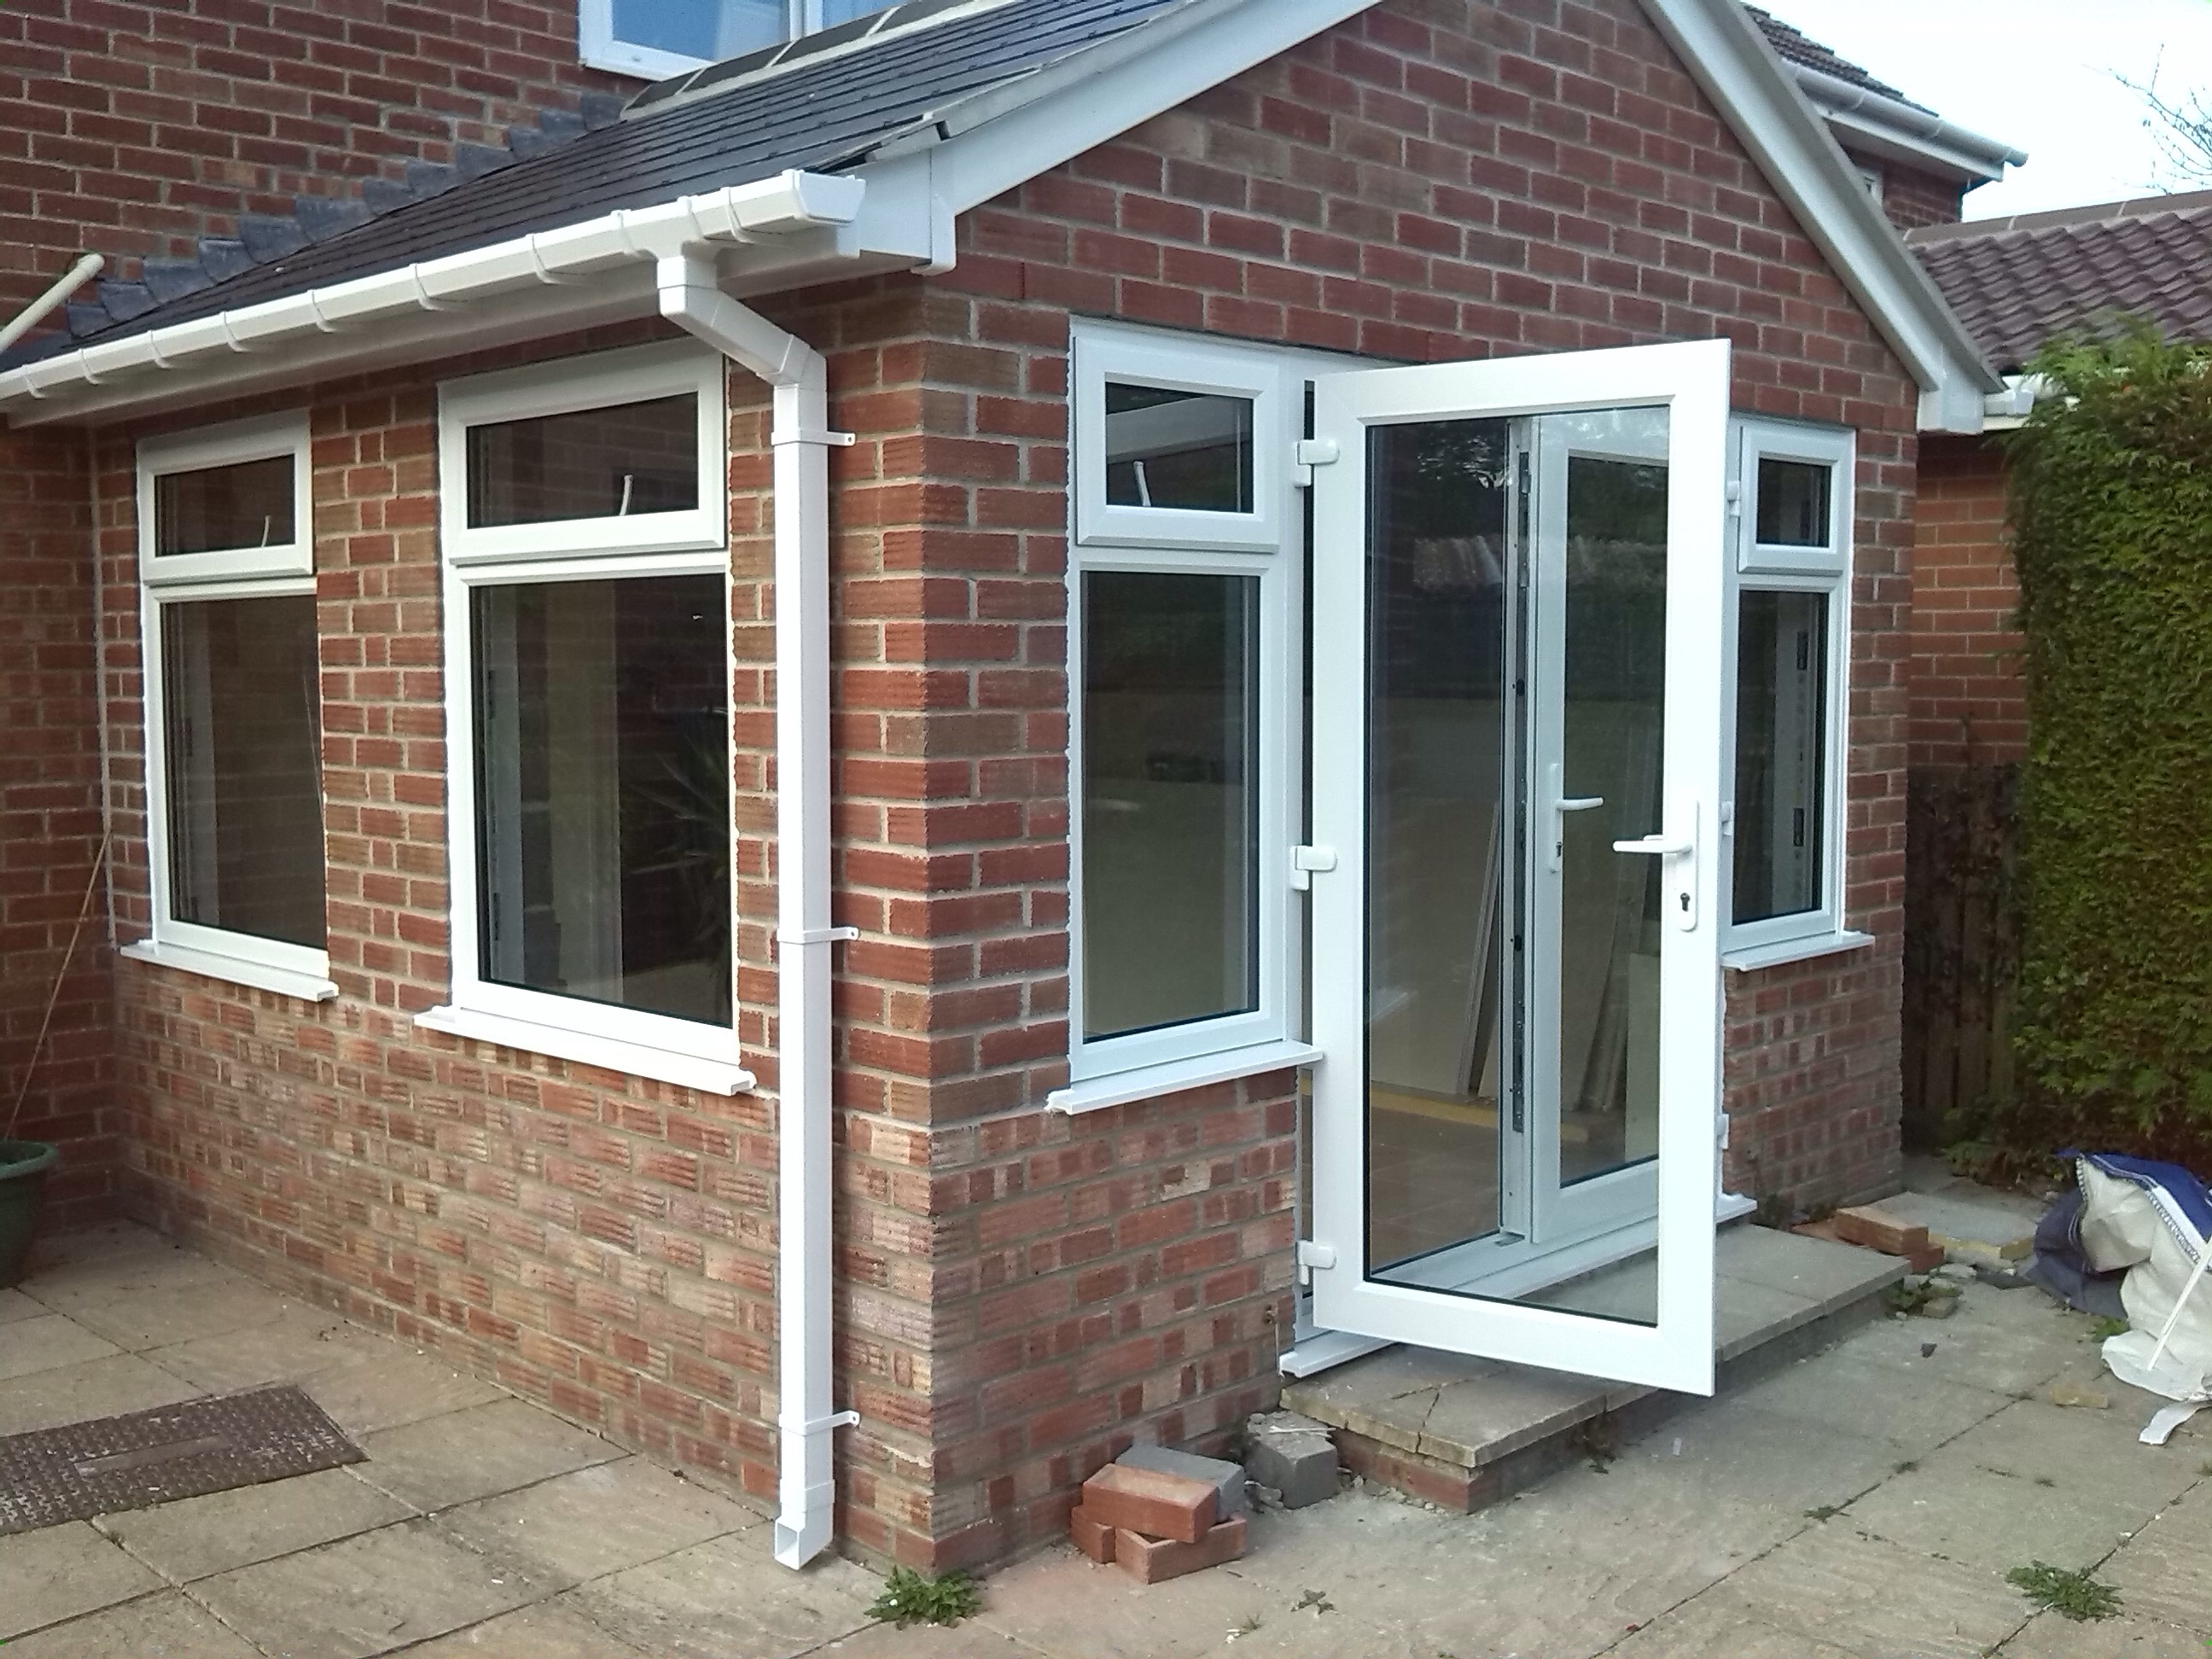 New upvc windows and doors in an extension in broadmayne for Upvc french doors dorset